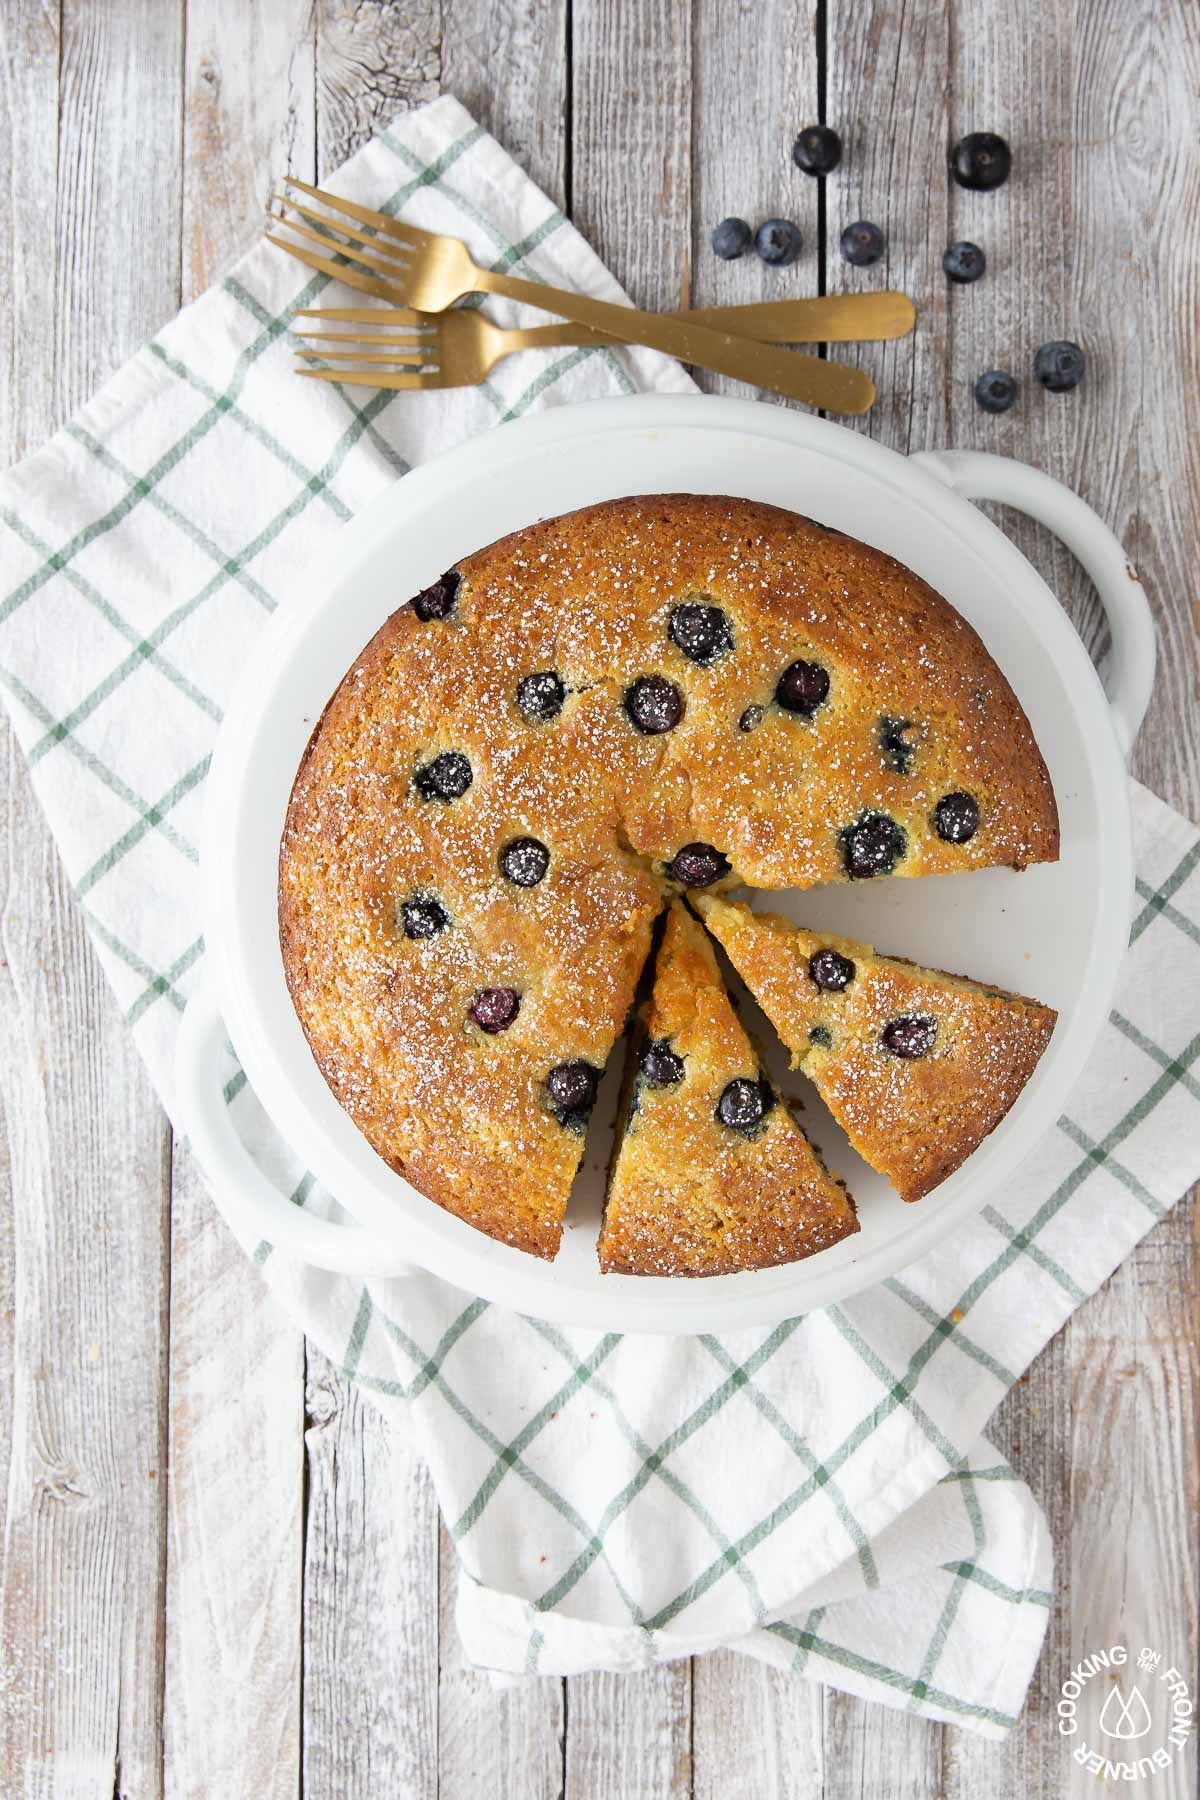 a lemon blueberry ricotta cake on a plate with two slices cut into it